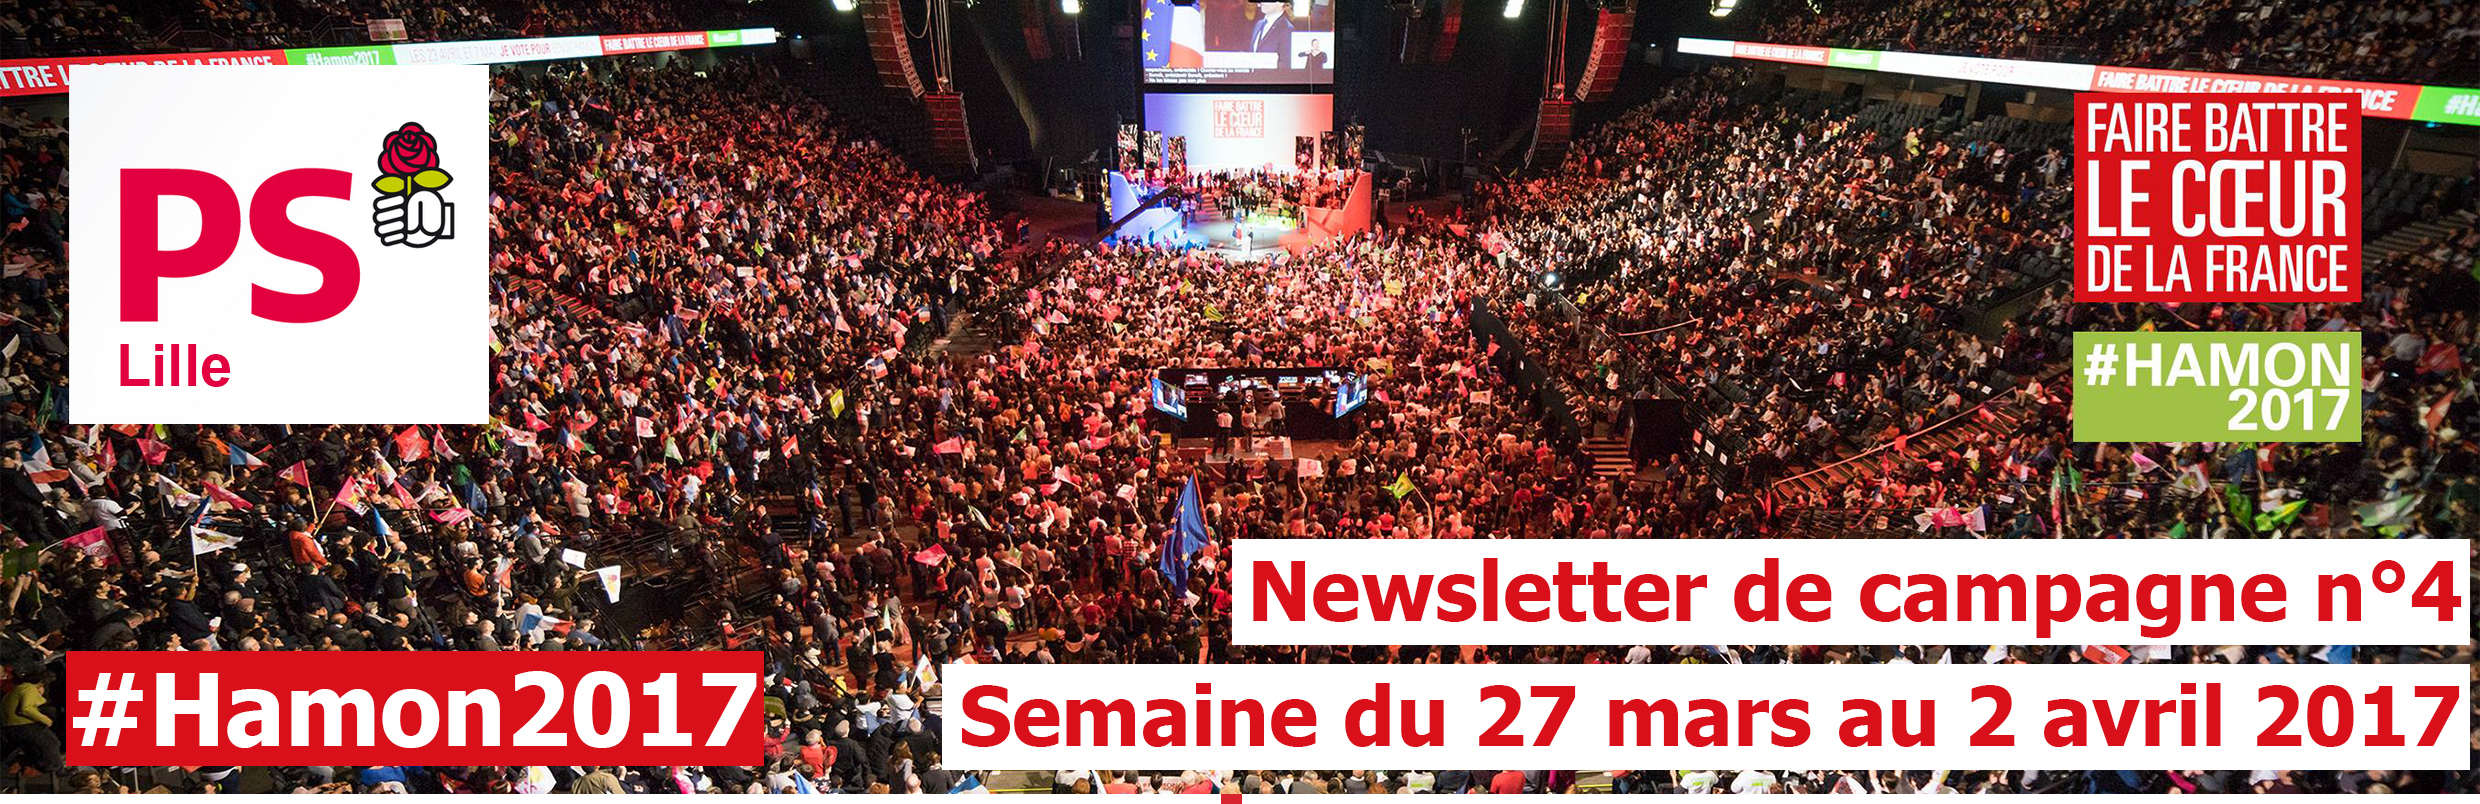 Newsletter n°4 - bandeau